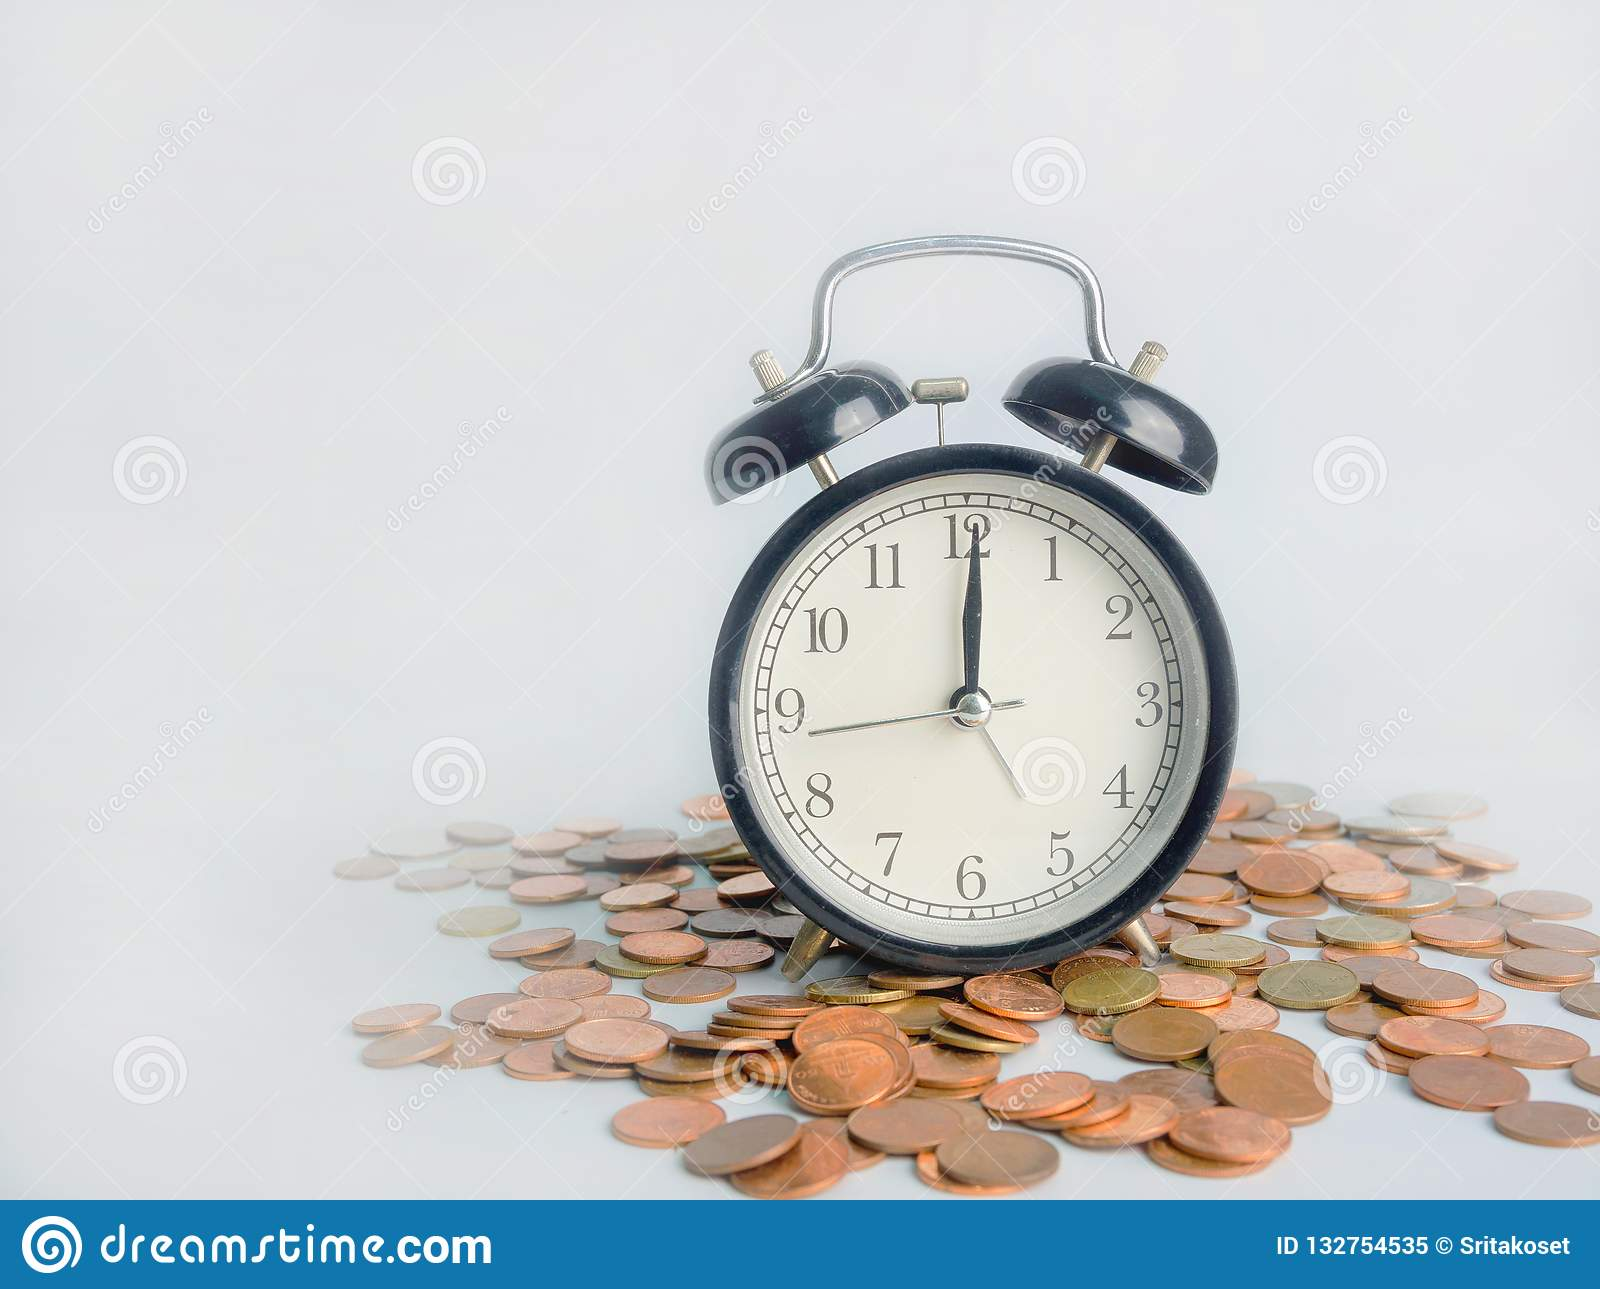 Time is Money, save time save money